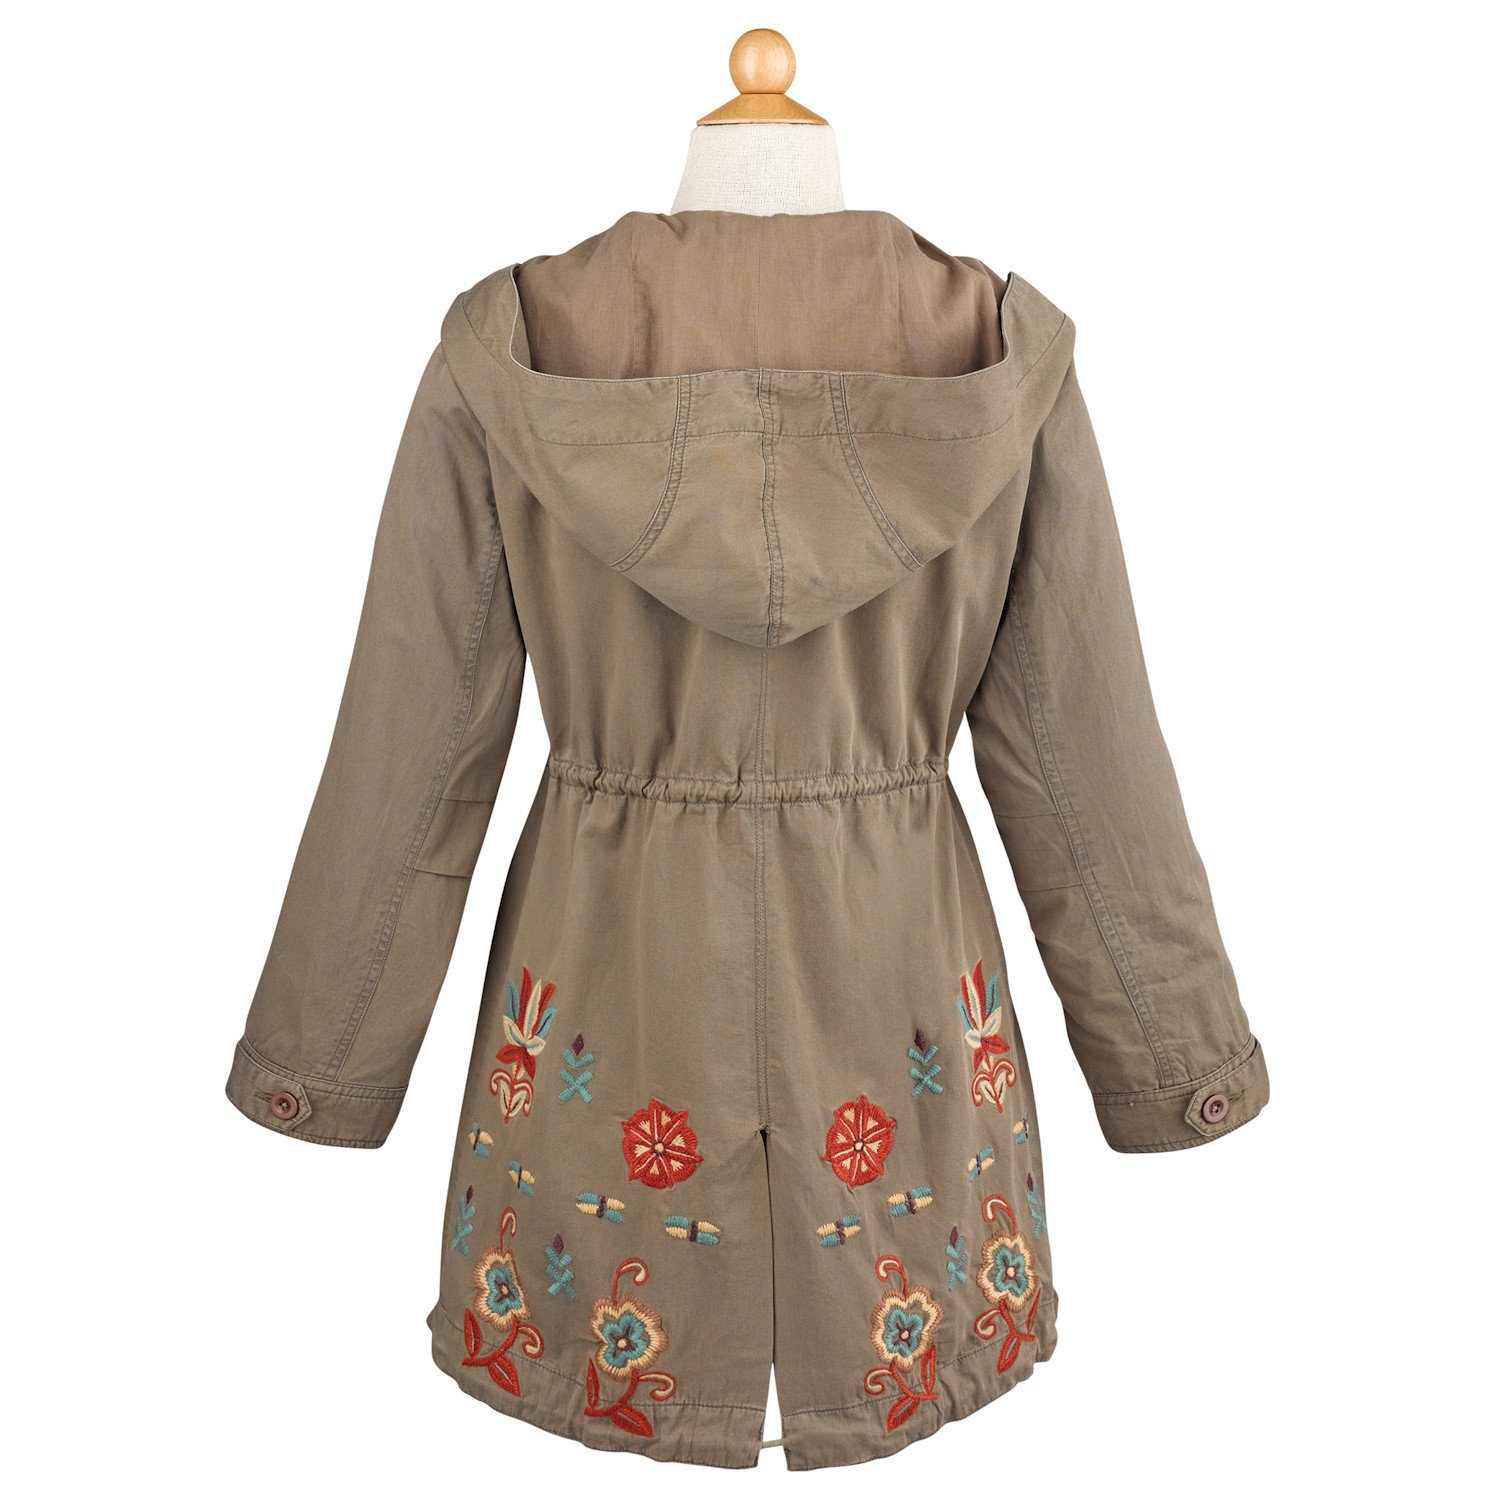 f2821d0b1 Amazon.com  Women s Floral Embroidered Jacket - Cotton Twill Army ...